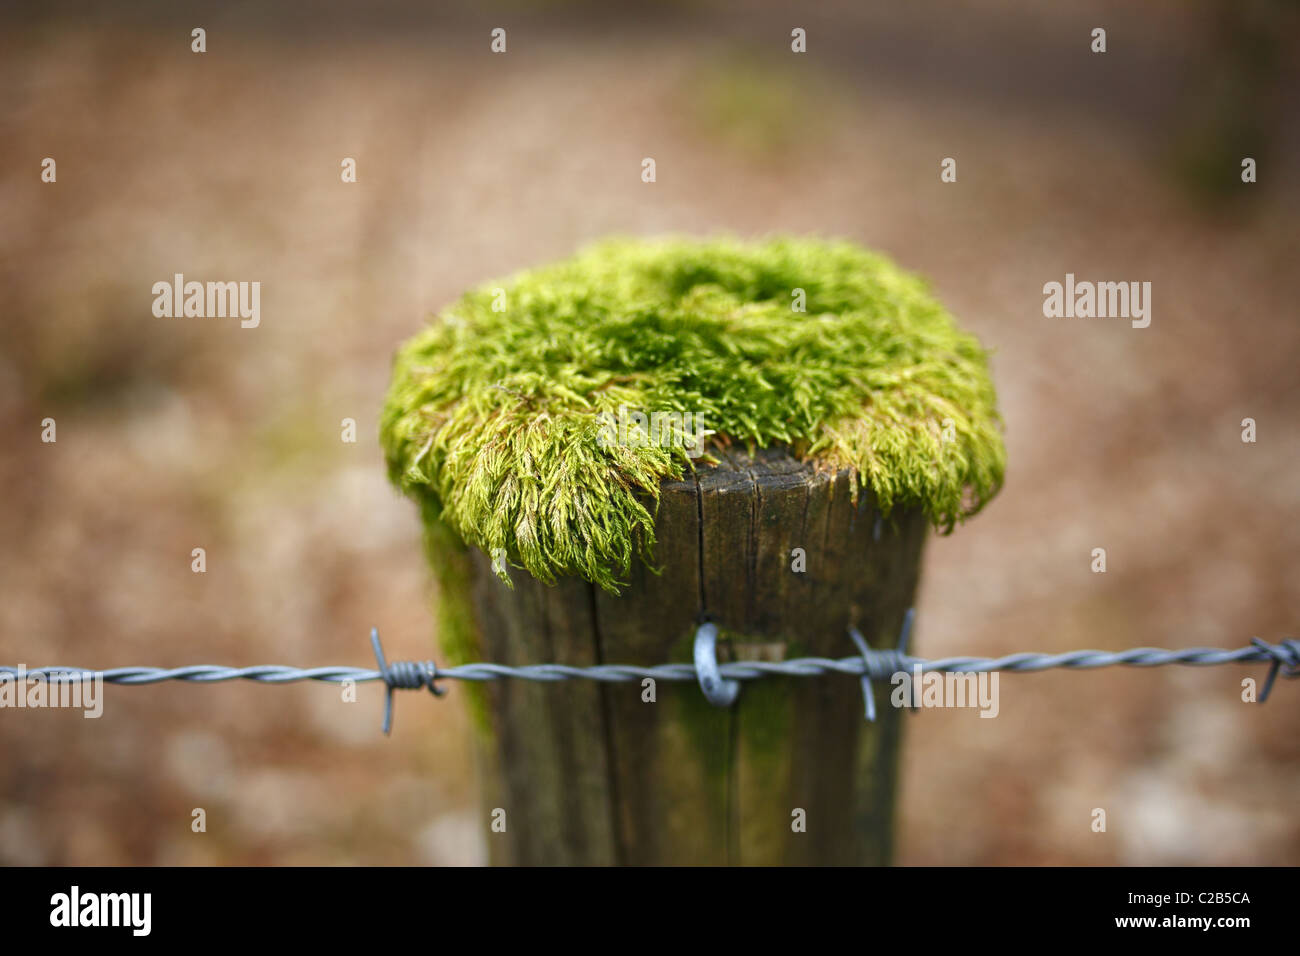 Moss growing on top of a fence post. - Stock Image